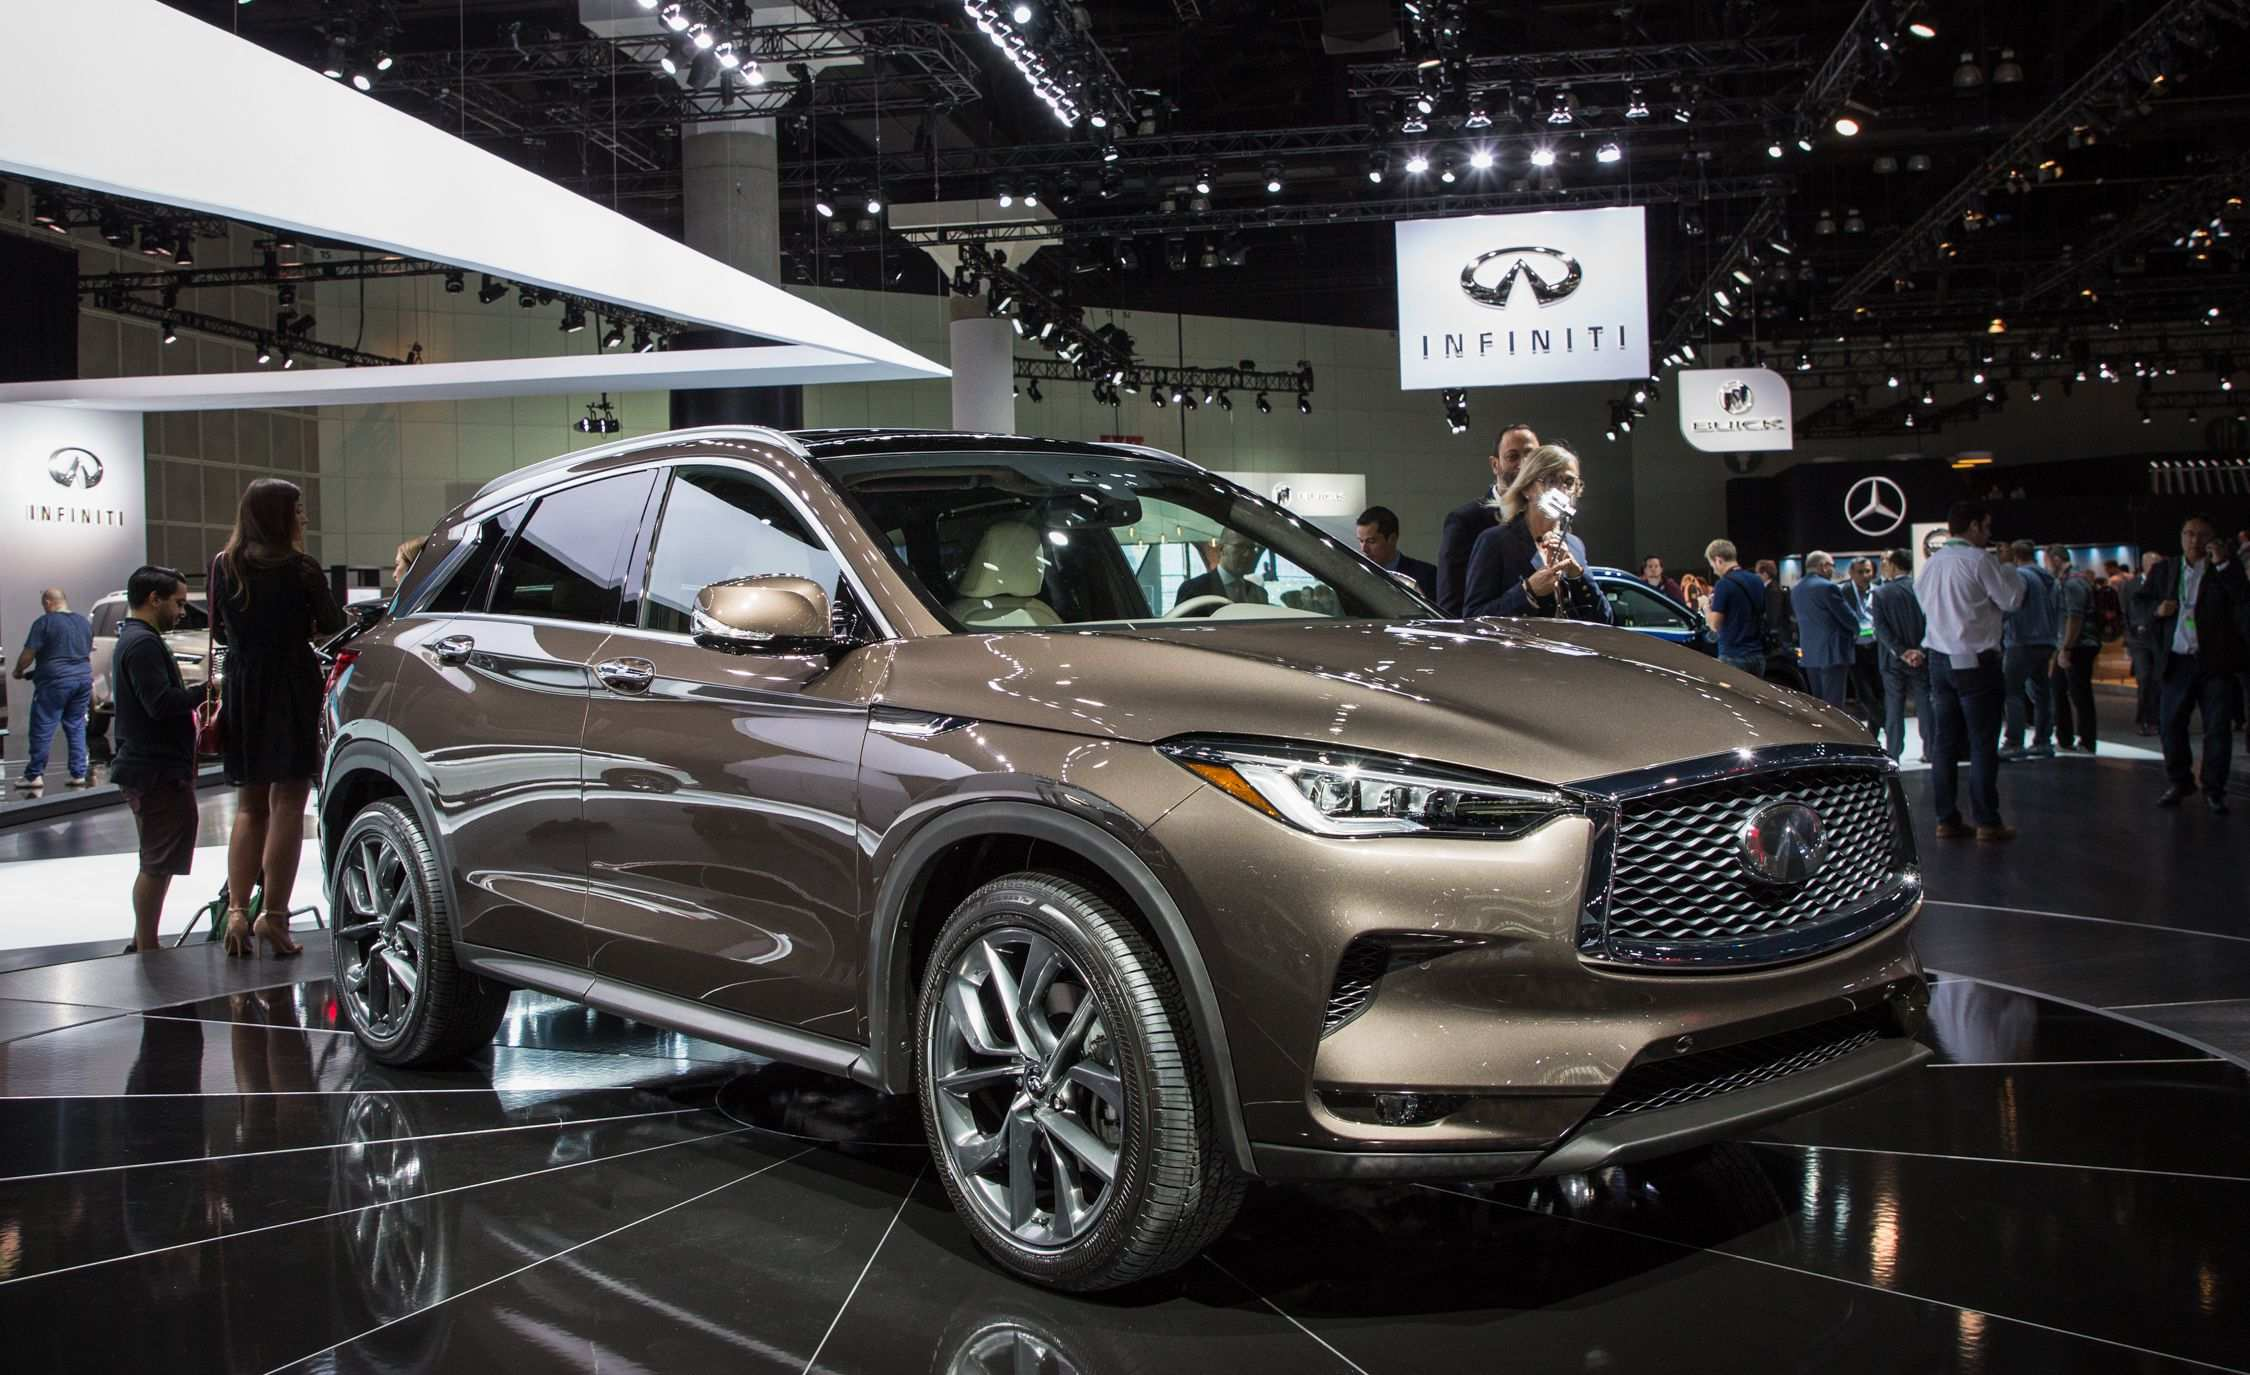 32 Concept of The Infiniti Qx50 2019 Trunk Specs And Review Research New with The Infiniti Qx50 2019 Trunk Specs And Review